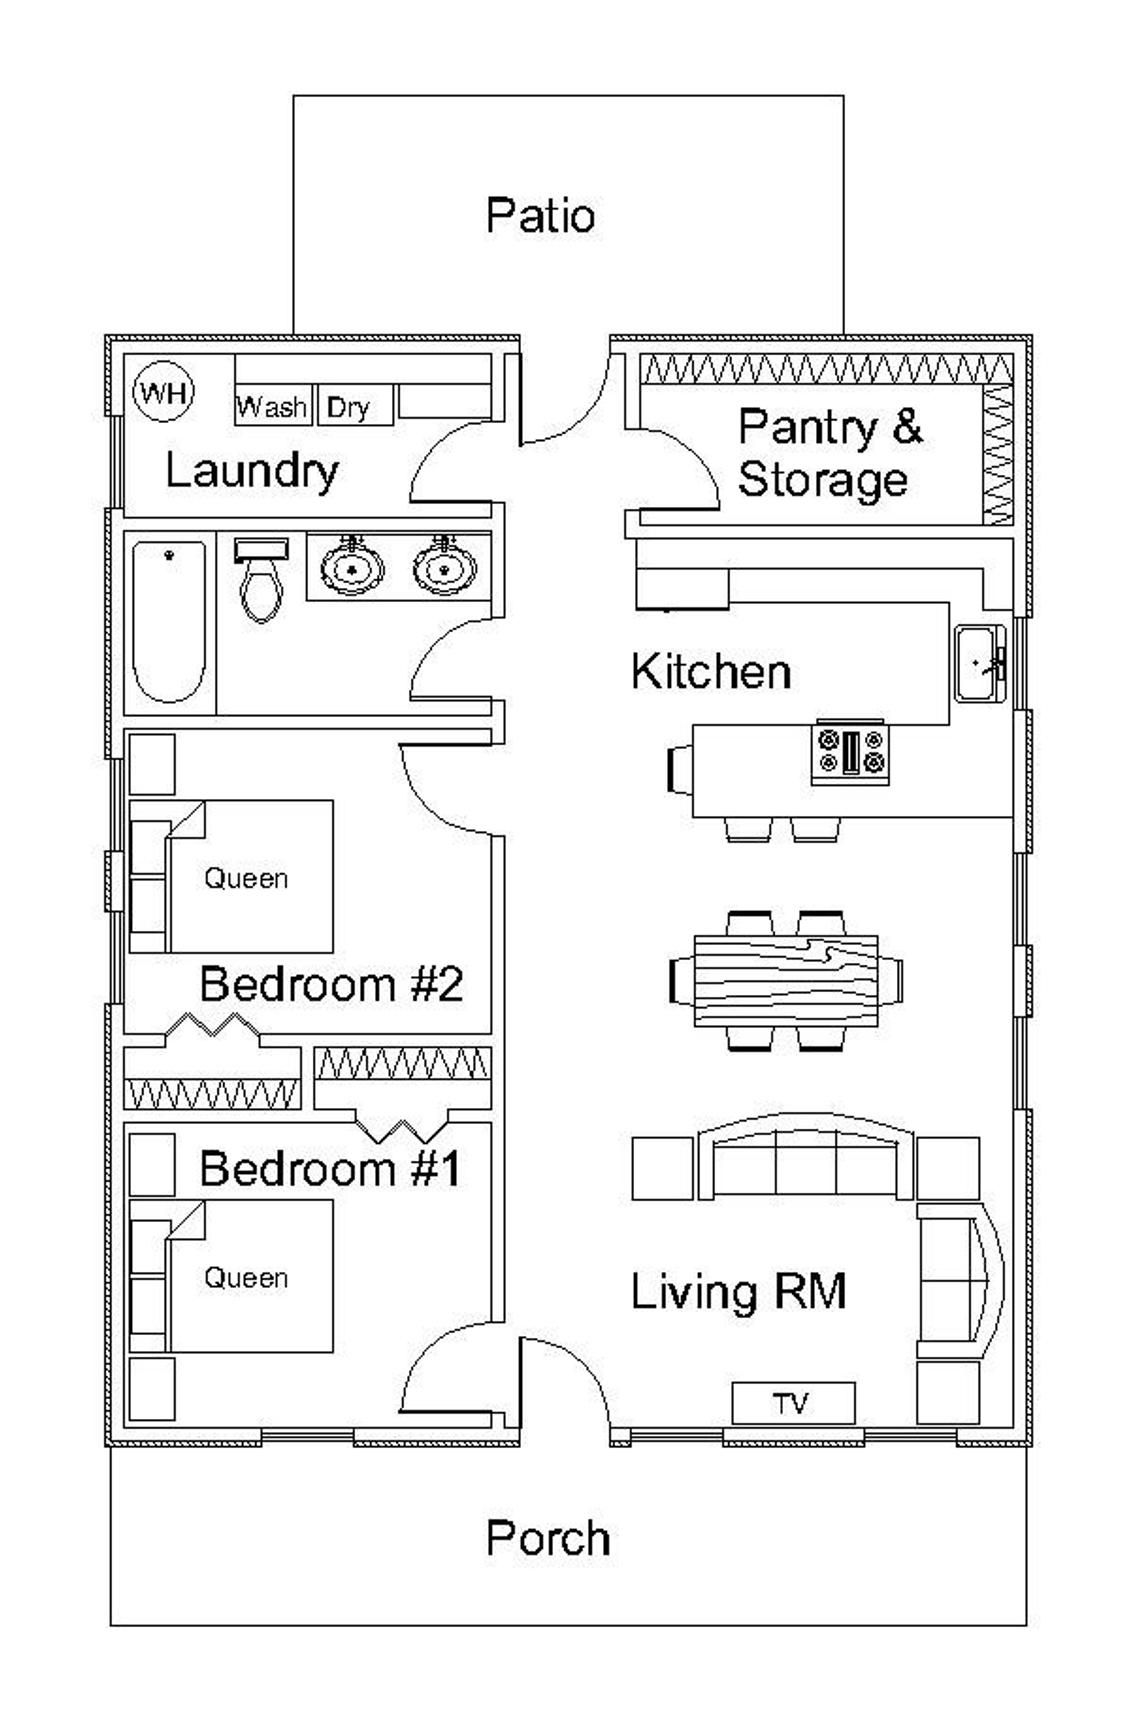 The cottage house plans custom plan etsy blueprint construction cost also best single story homes images in rh pinterest